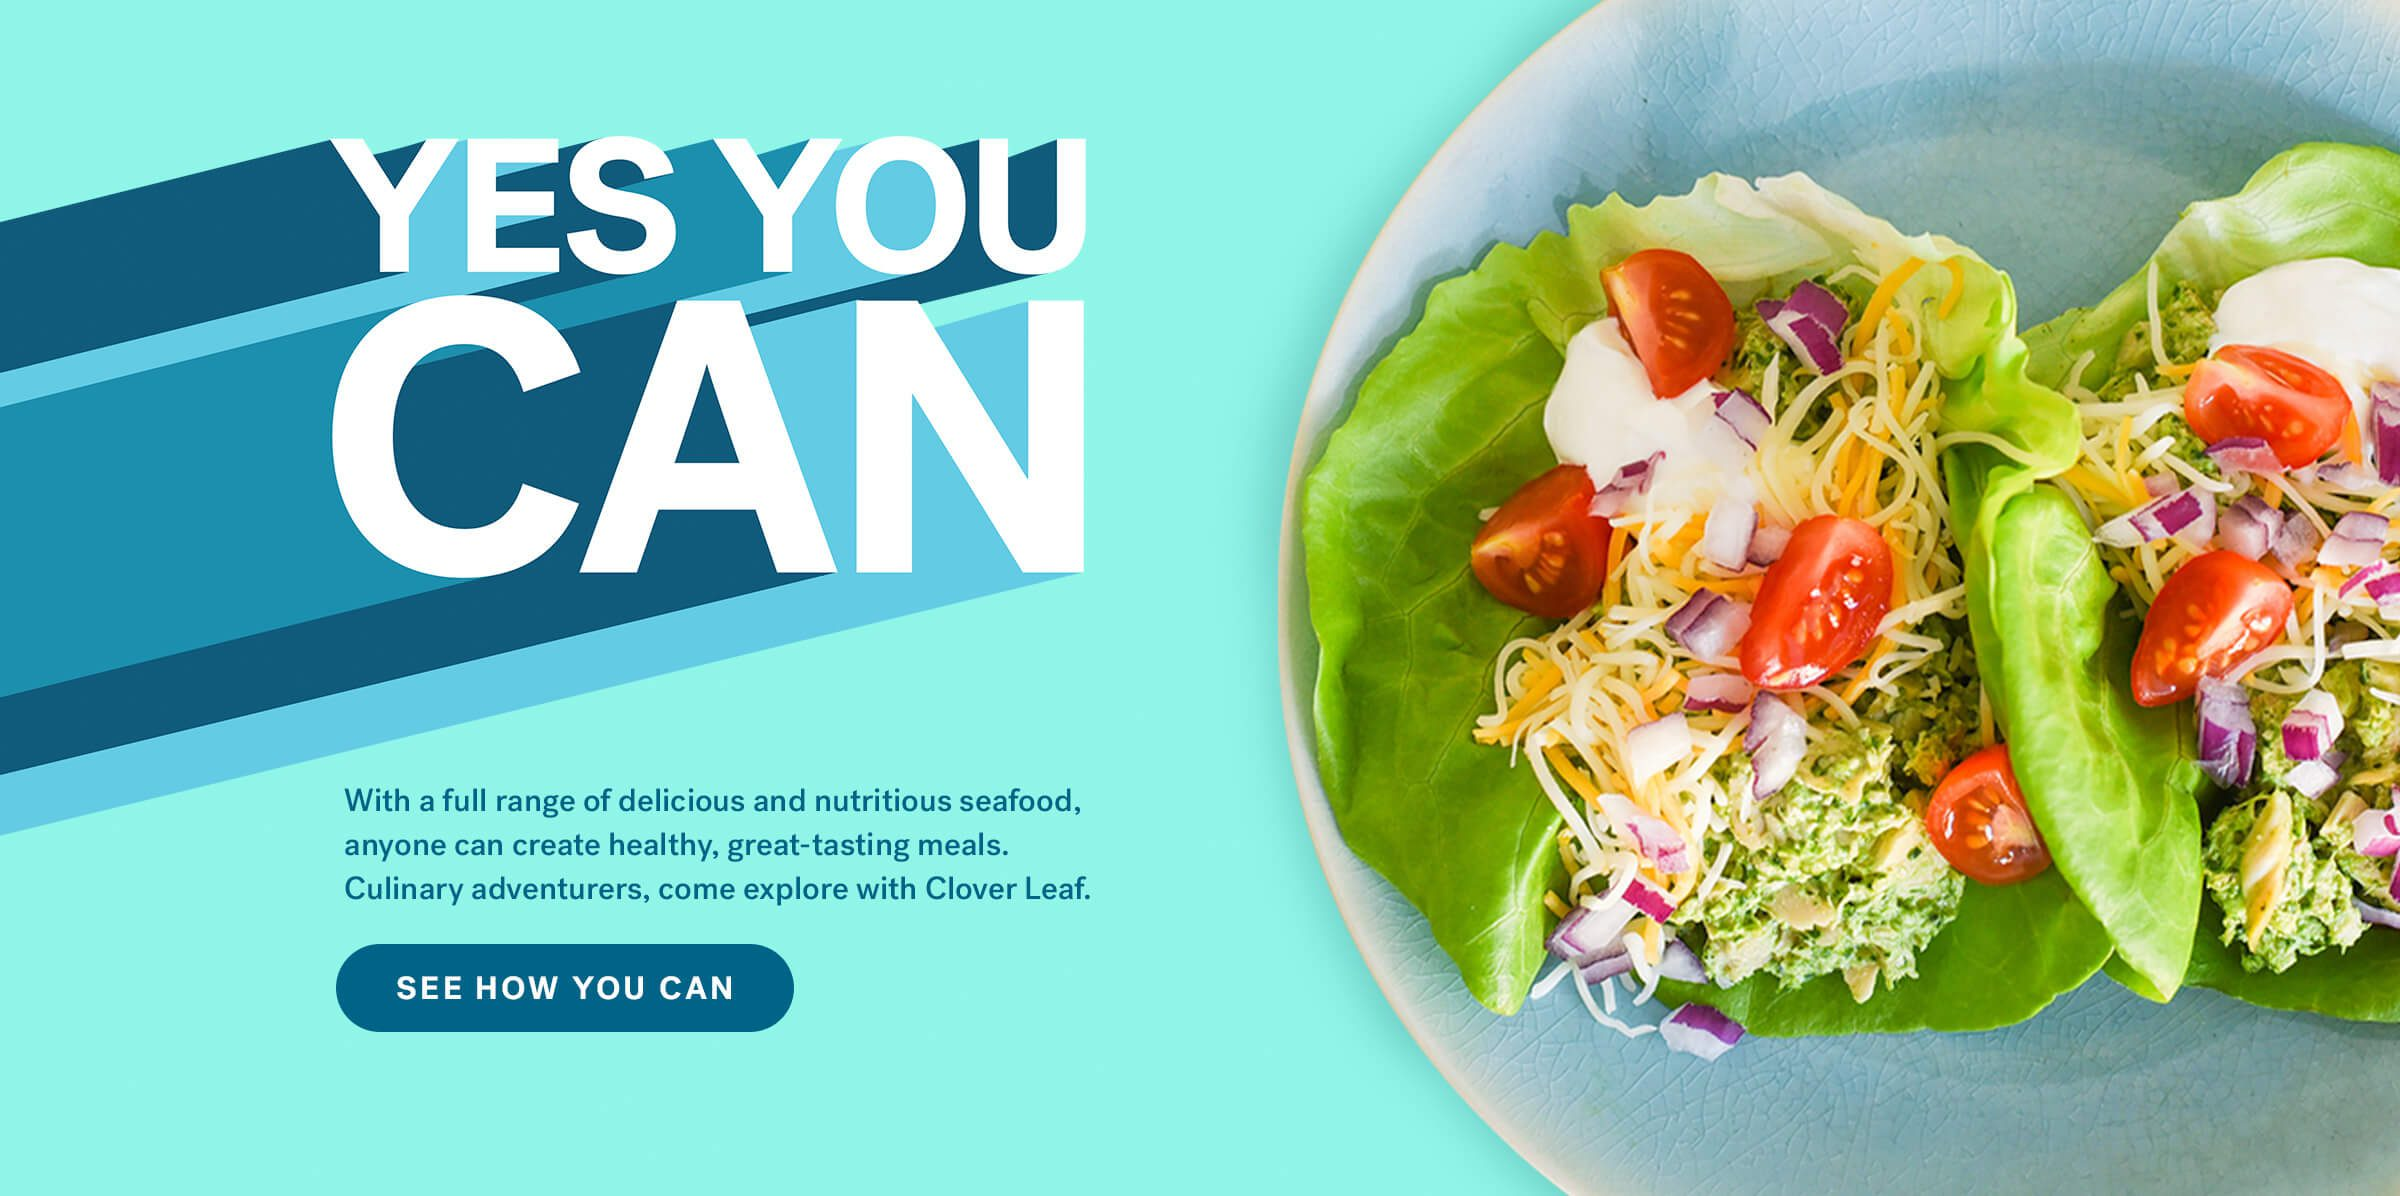 Yes You Can.  With a full range of delicious and nutritious seafood, anyone can create healthy, great-tasting meals. Culinary adventurers, come explore with Clover Leaf. See How You Can.